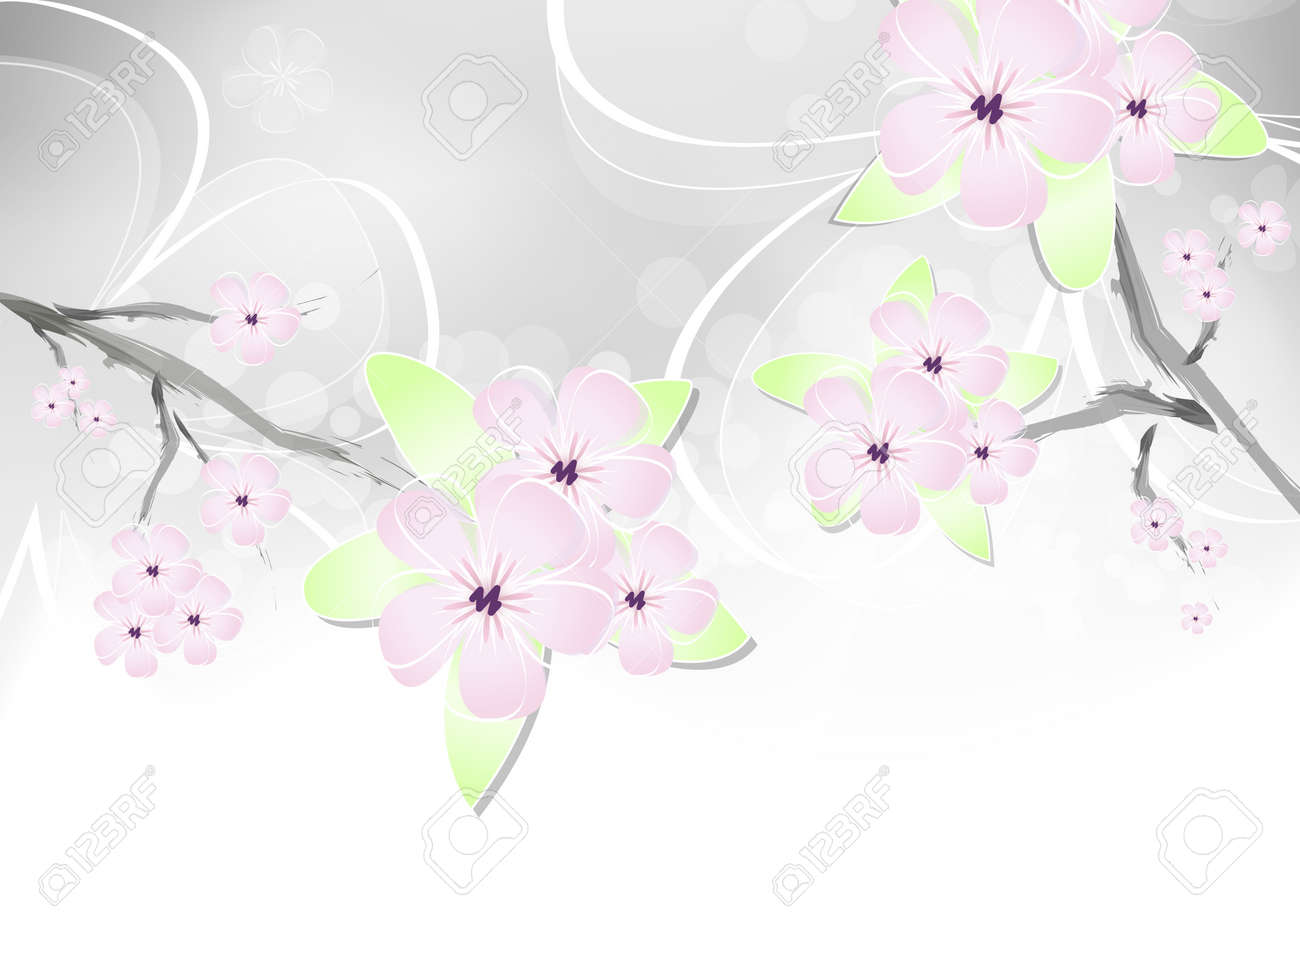 Spring Flower Background With Abstract Cherry Blossoms